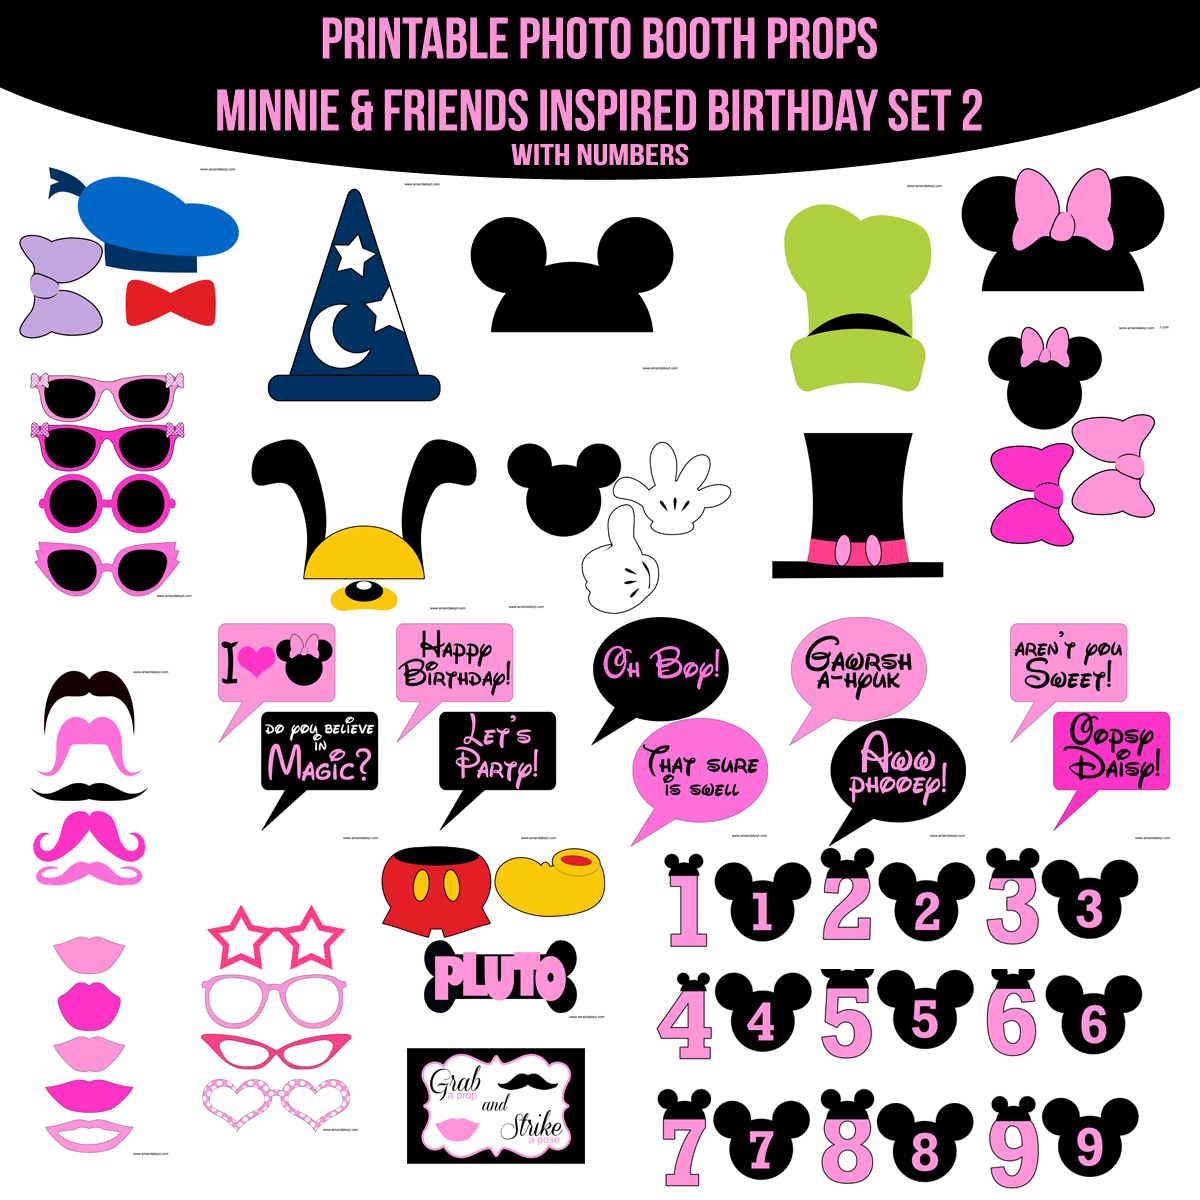 picture regarding Minnie Mouse Photo Booth Props Printable named Quick Obtain Minnie Mouse Buddies Birthday Encouraged Printable Photograph Booth Prop Established 2 Amanda Keyt Printable Strategies